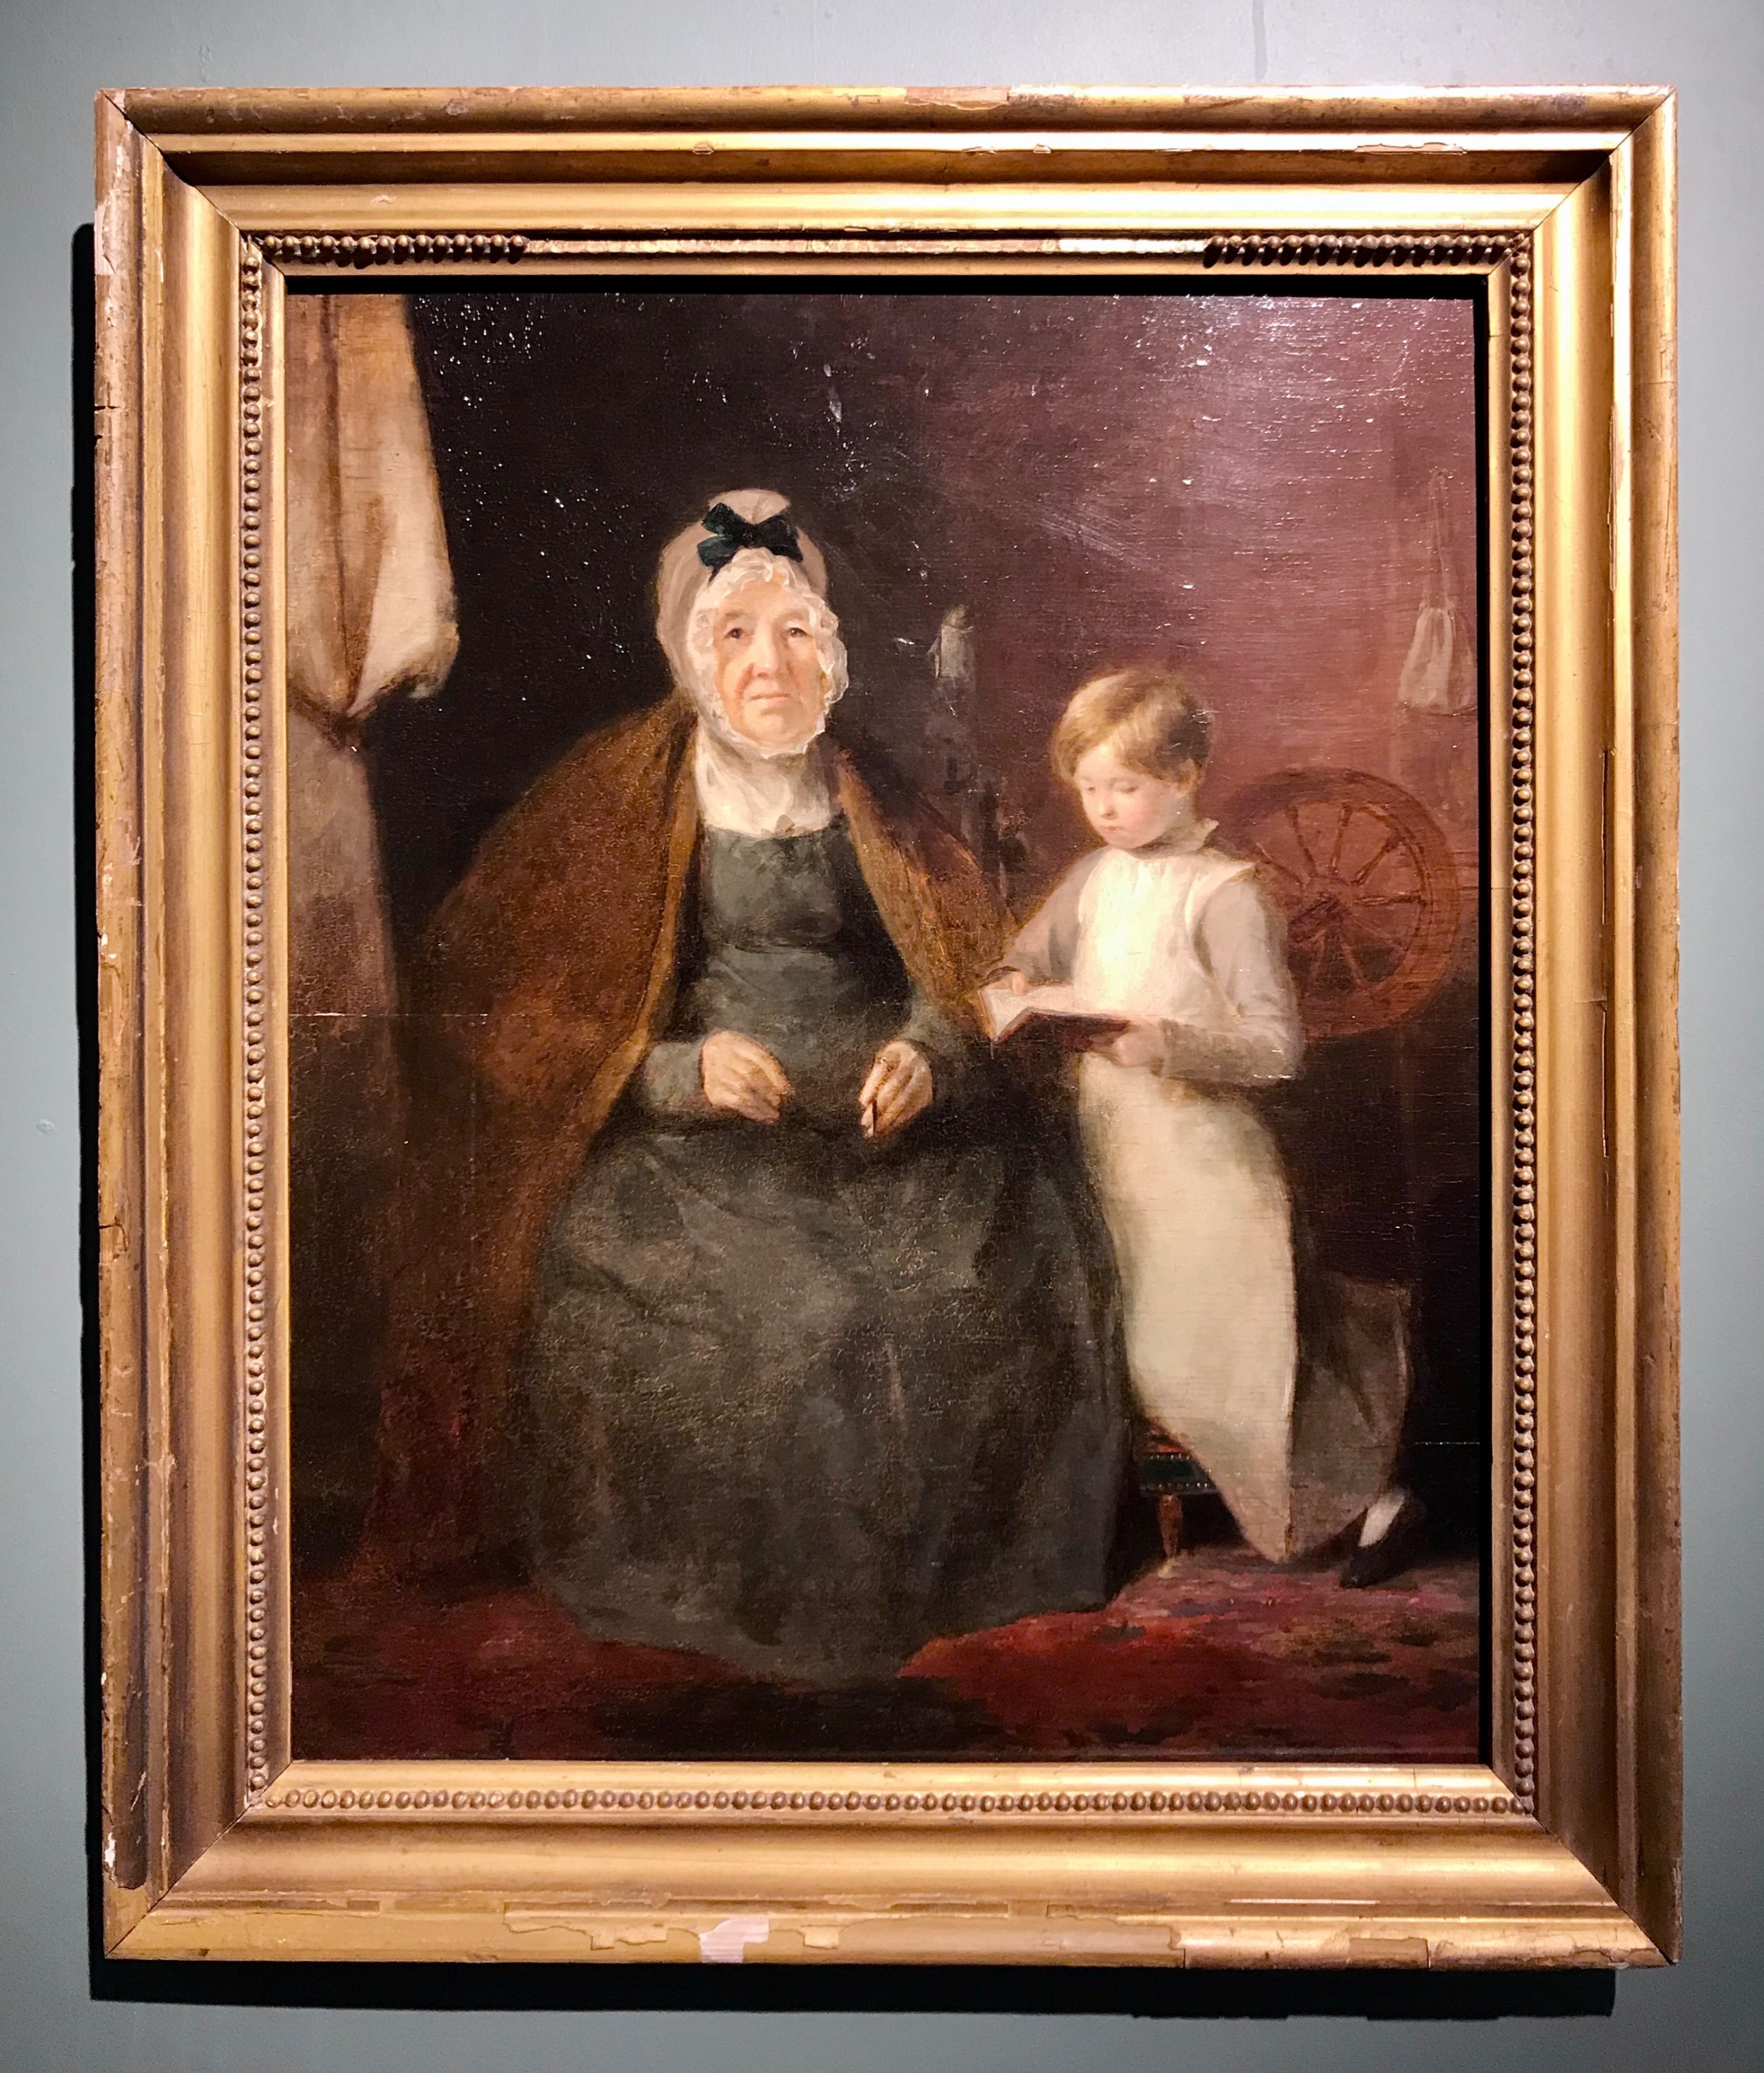 an intimate cabinet portrait of elizabeth constable and her granddaughter by andrew geddes ara early 19th century scottish portrait comparable to sir david wilkie